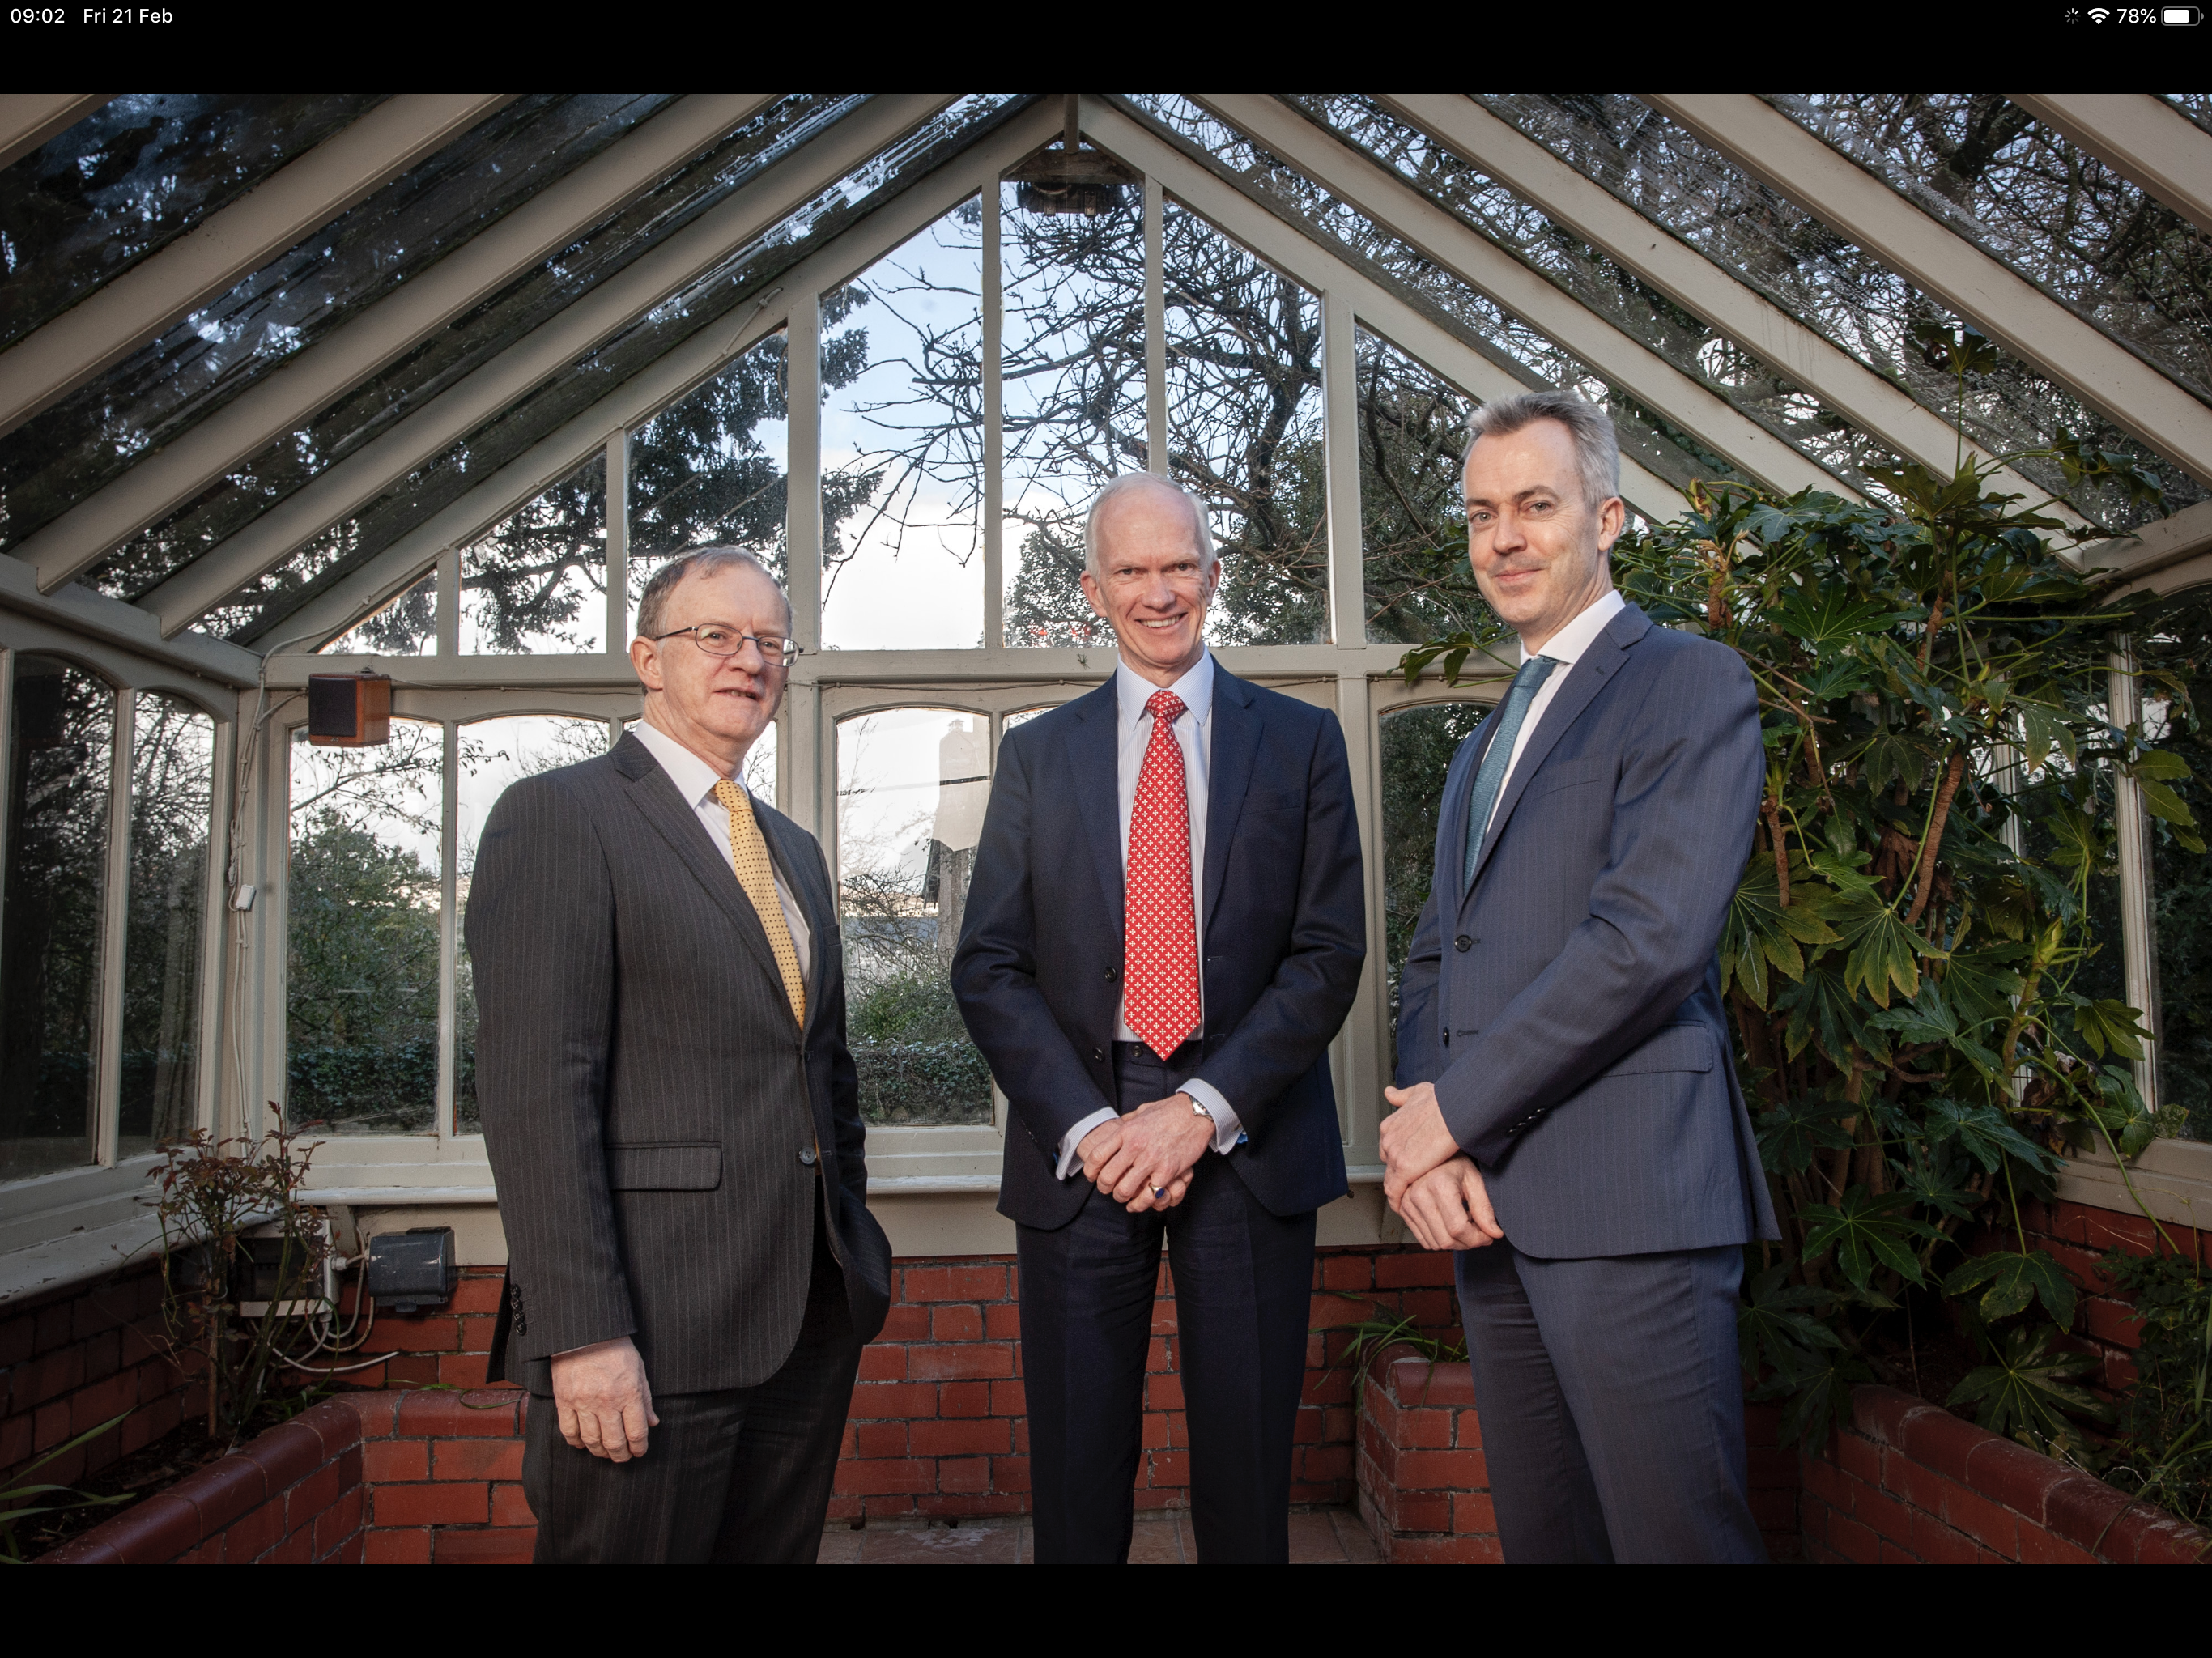 BGF opens Cork office as it eyes equity investment opportunities in Munster